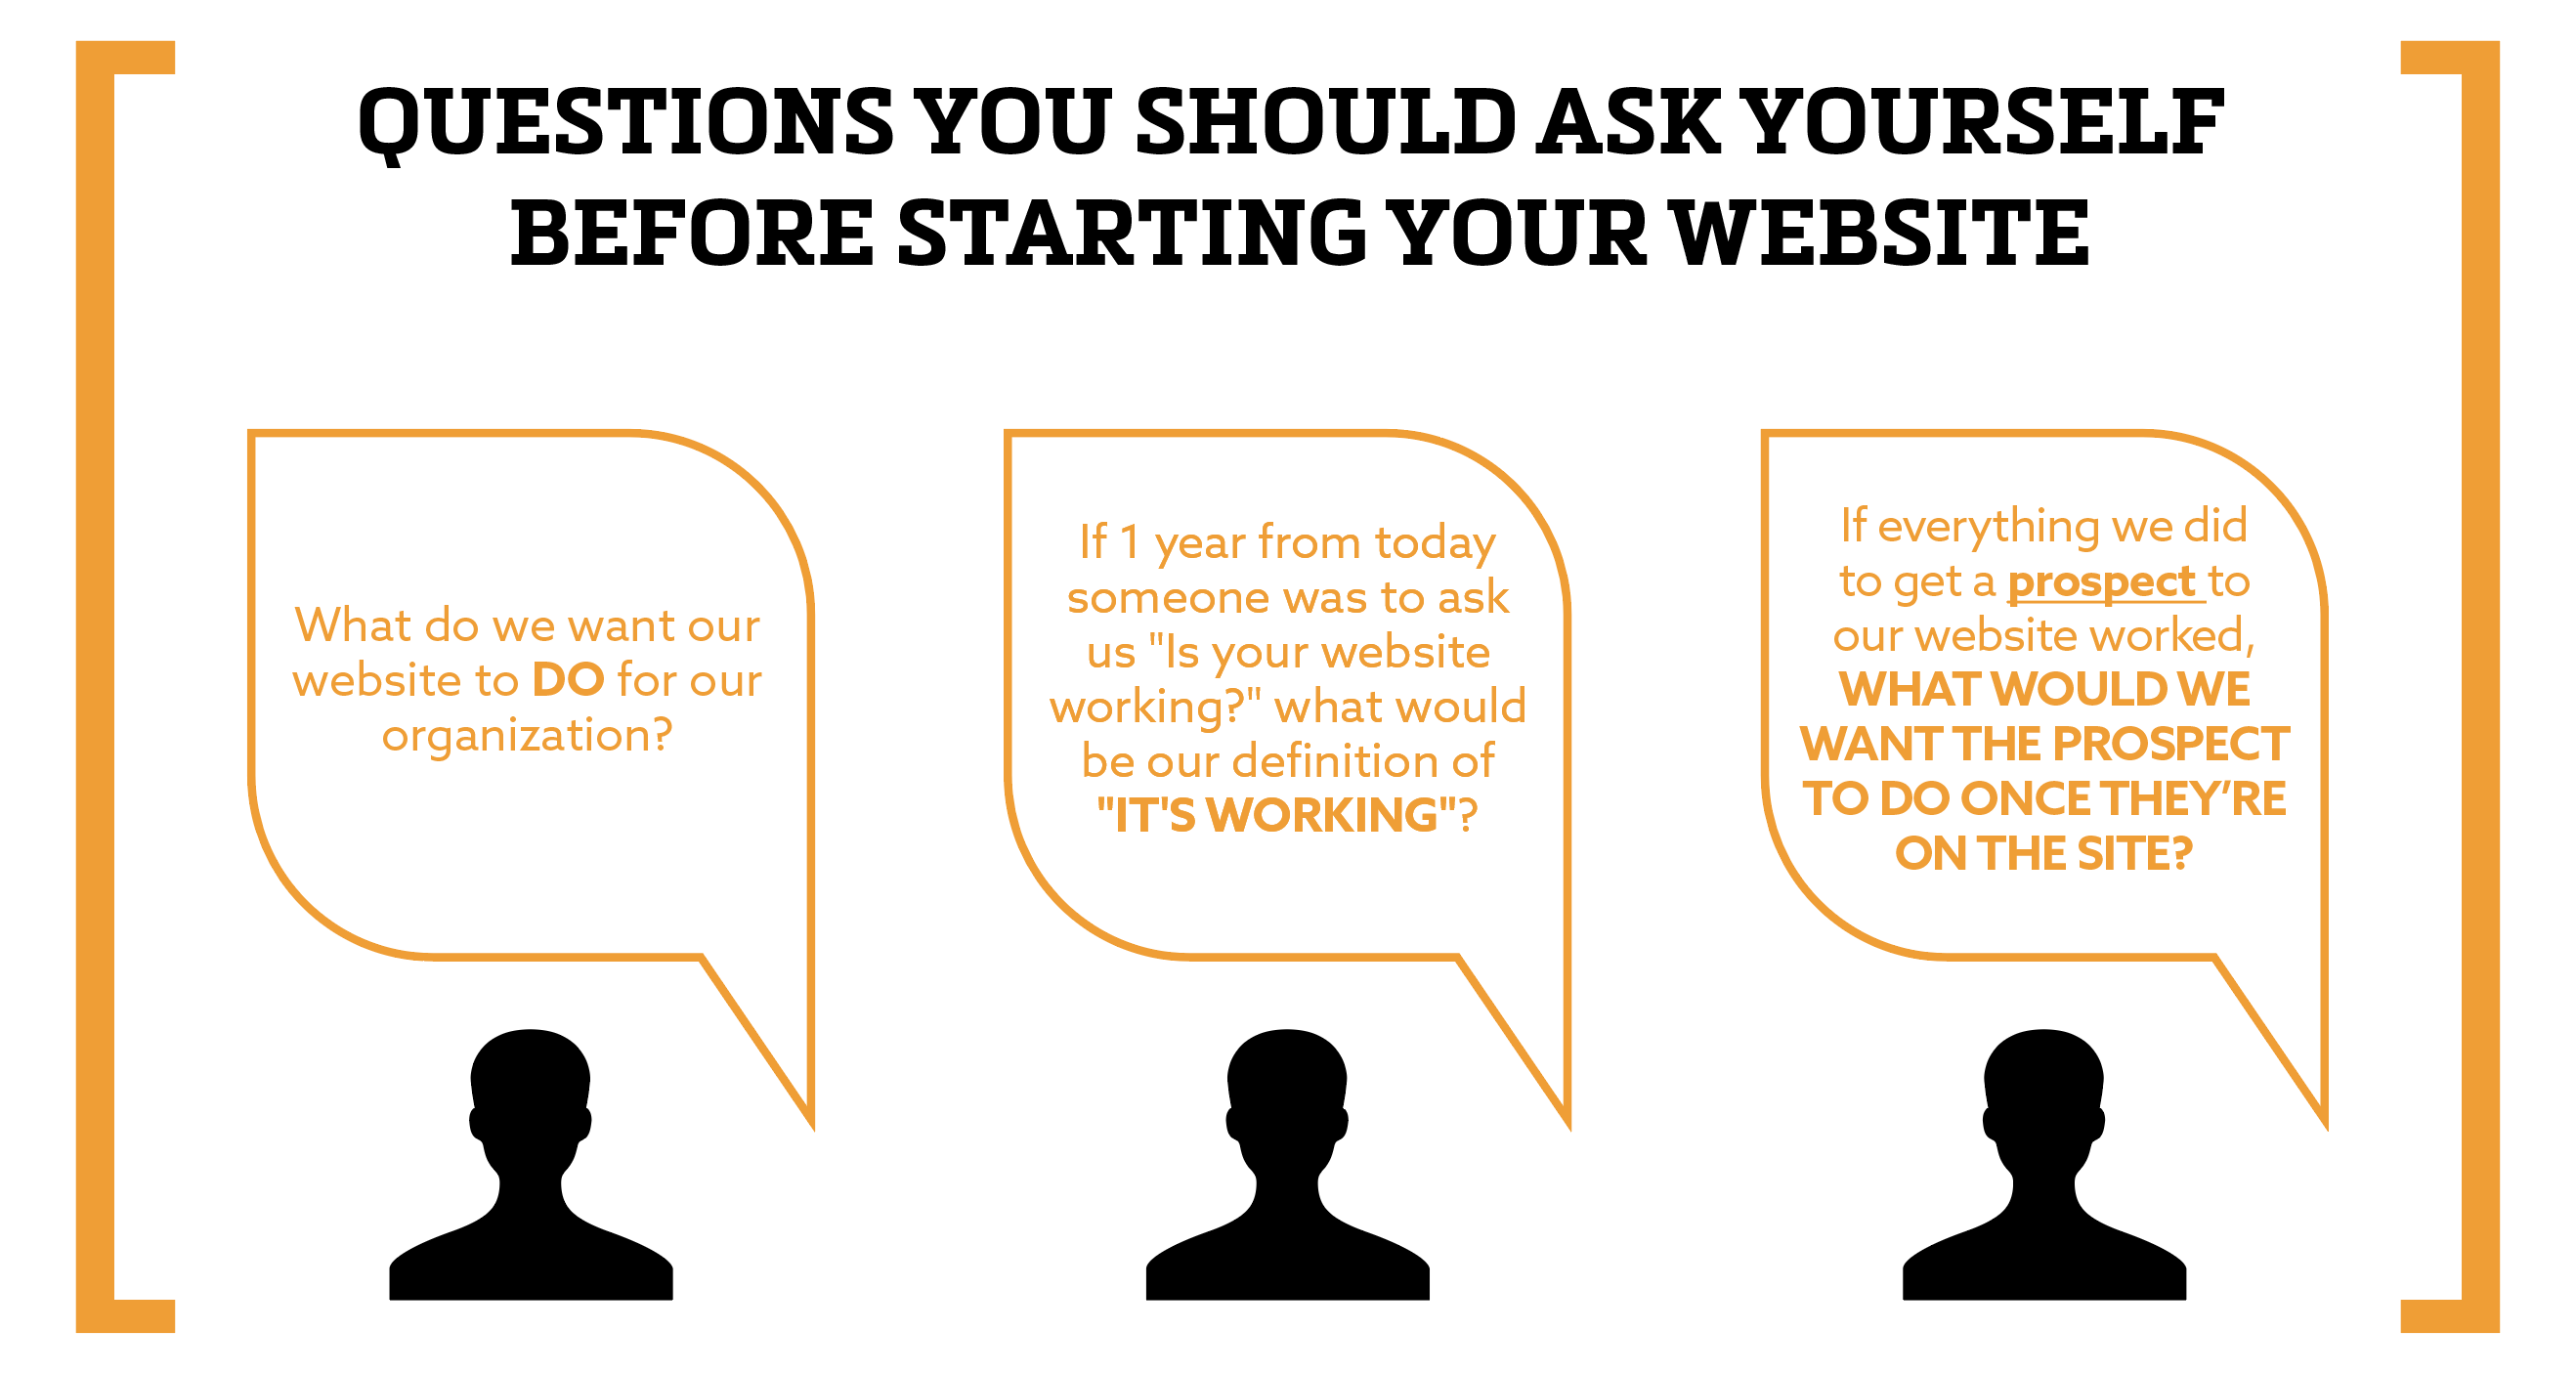 questions-to-ask-yourself-before-starting-website.png